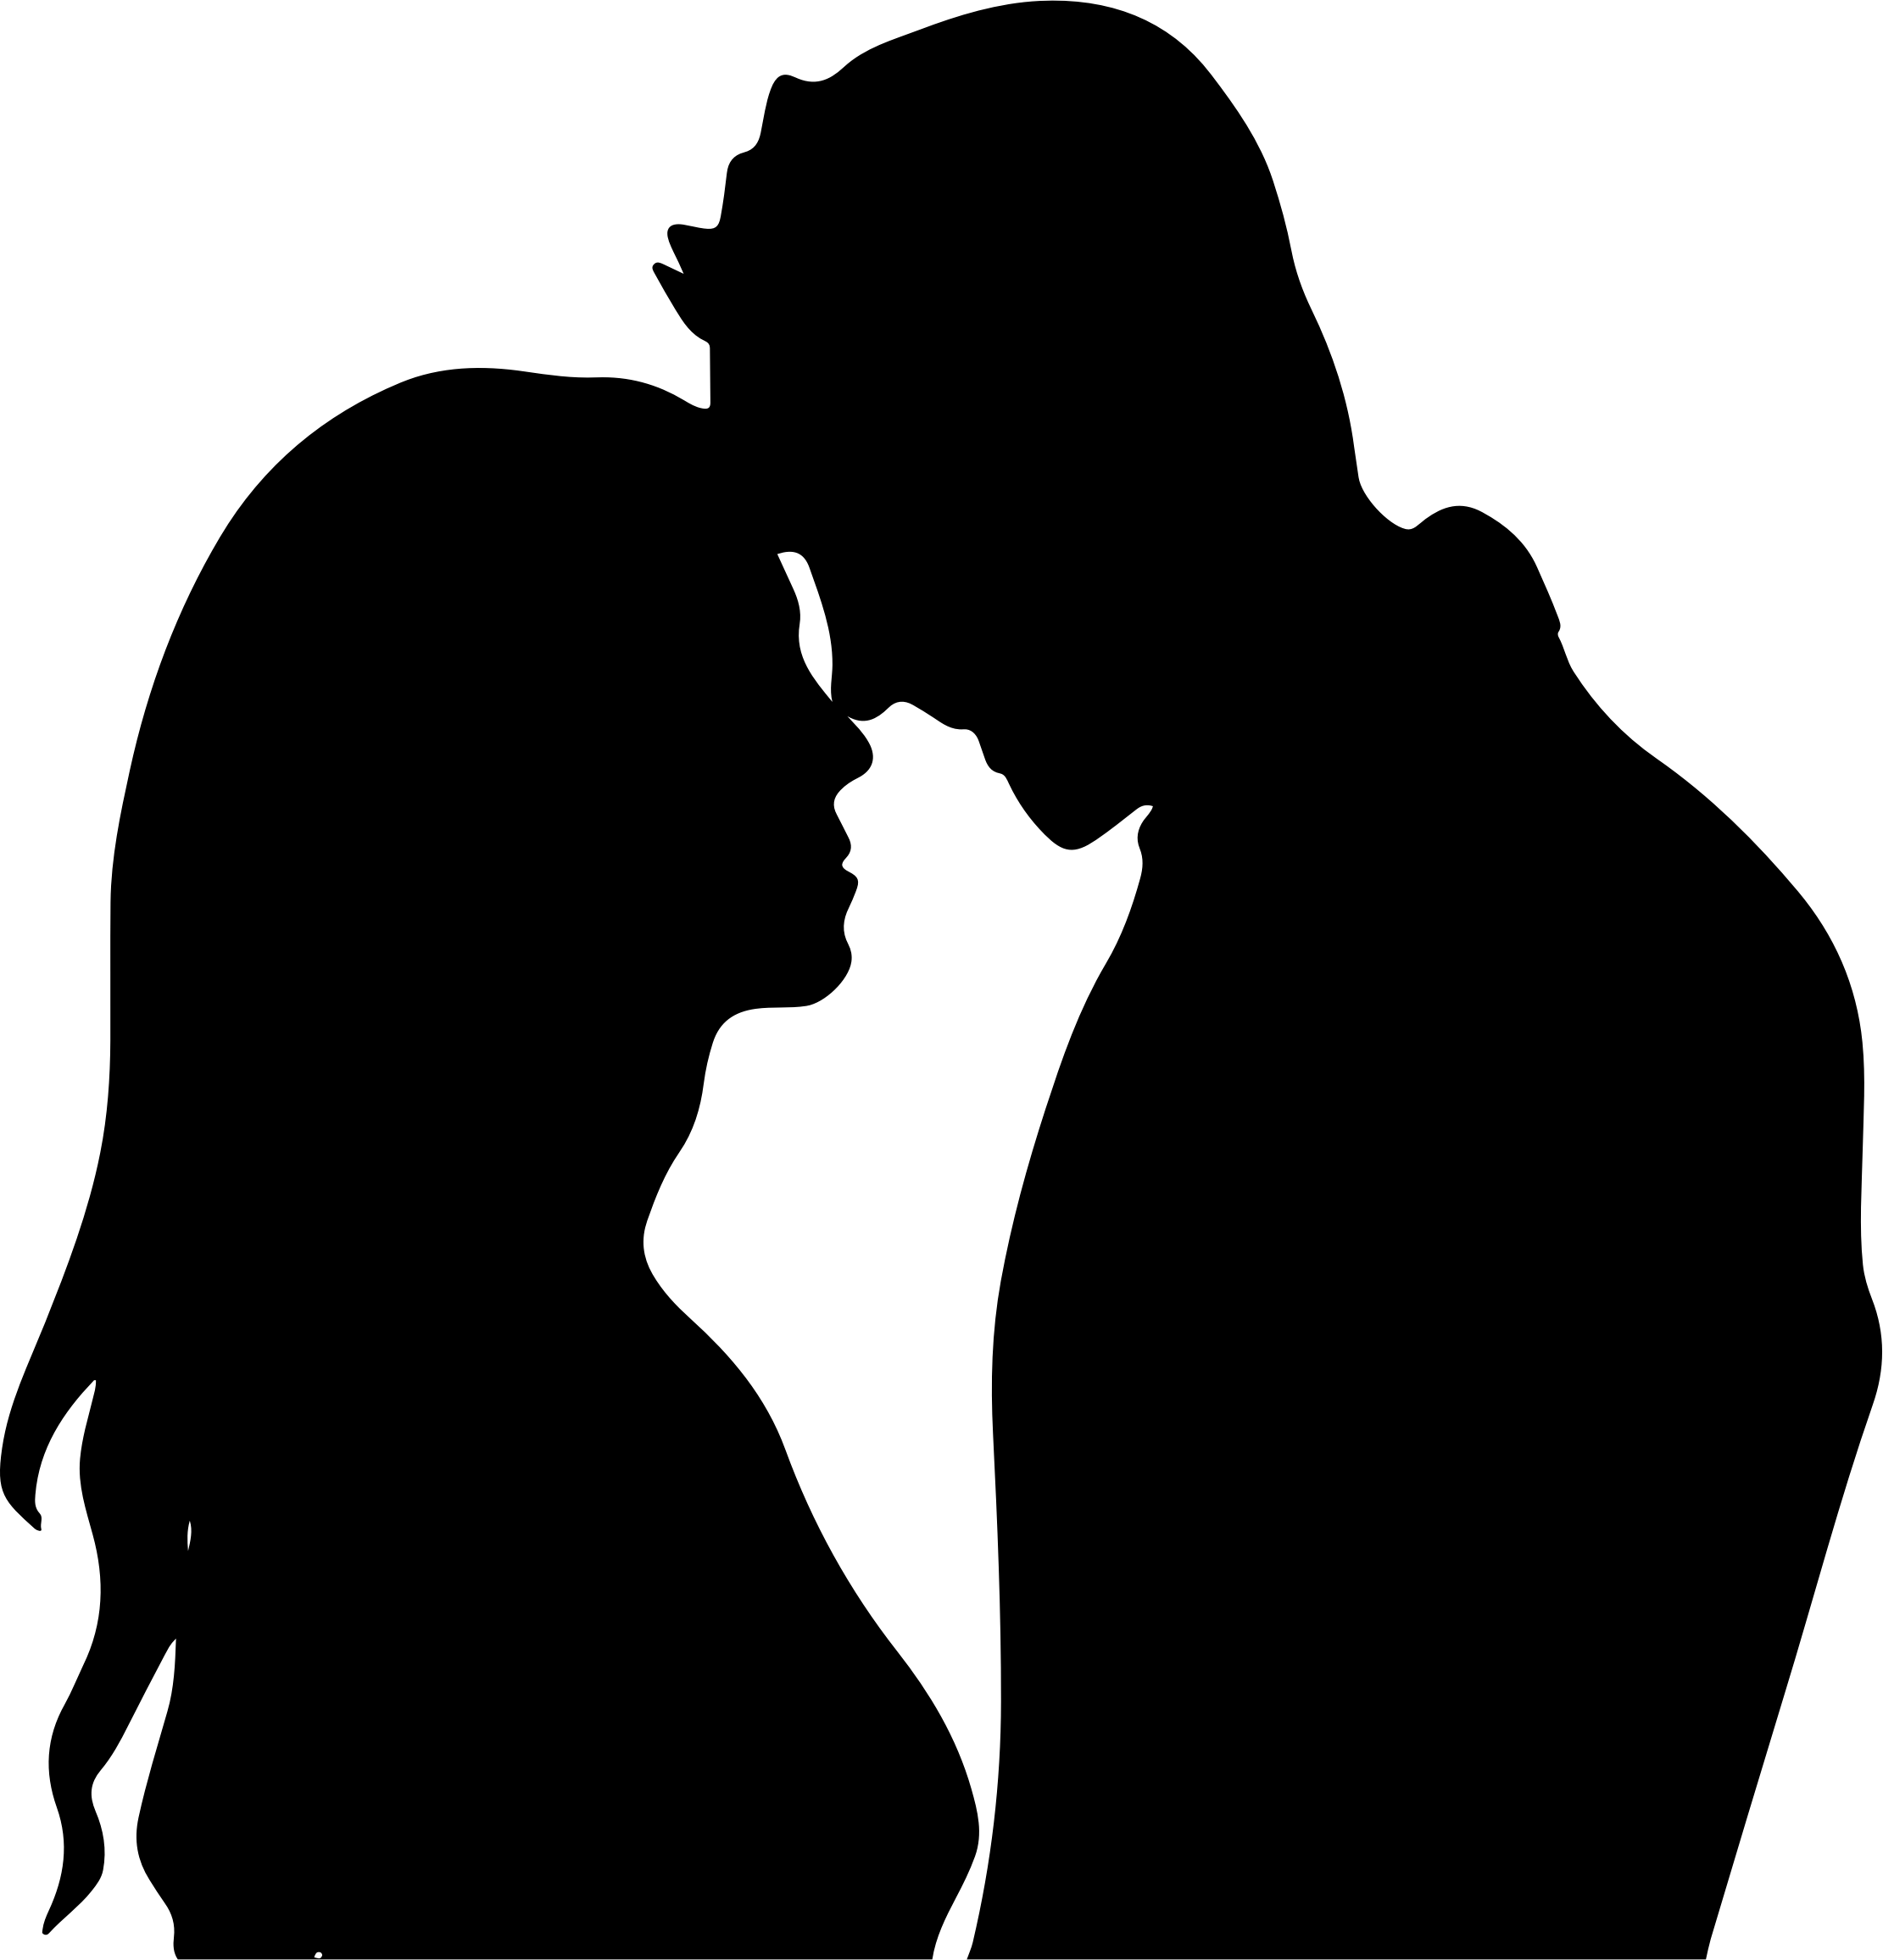 couples silhouette clip art at getdrawings com free for personal rh getdrawings com kiss clipart gif kick clip art